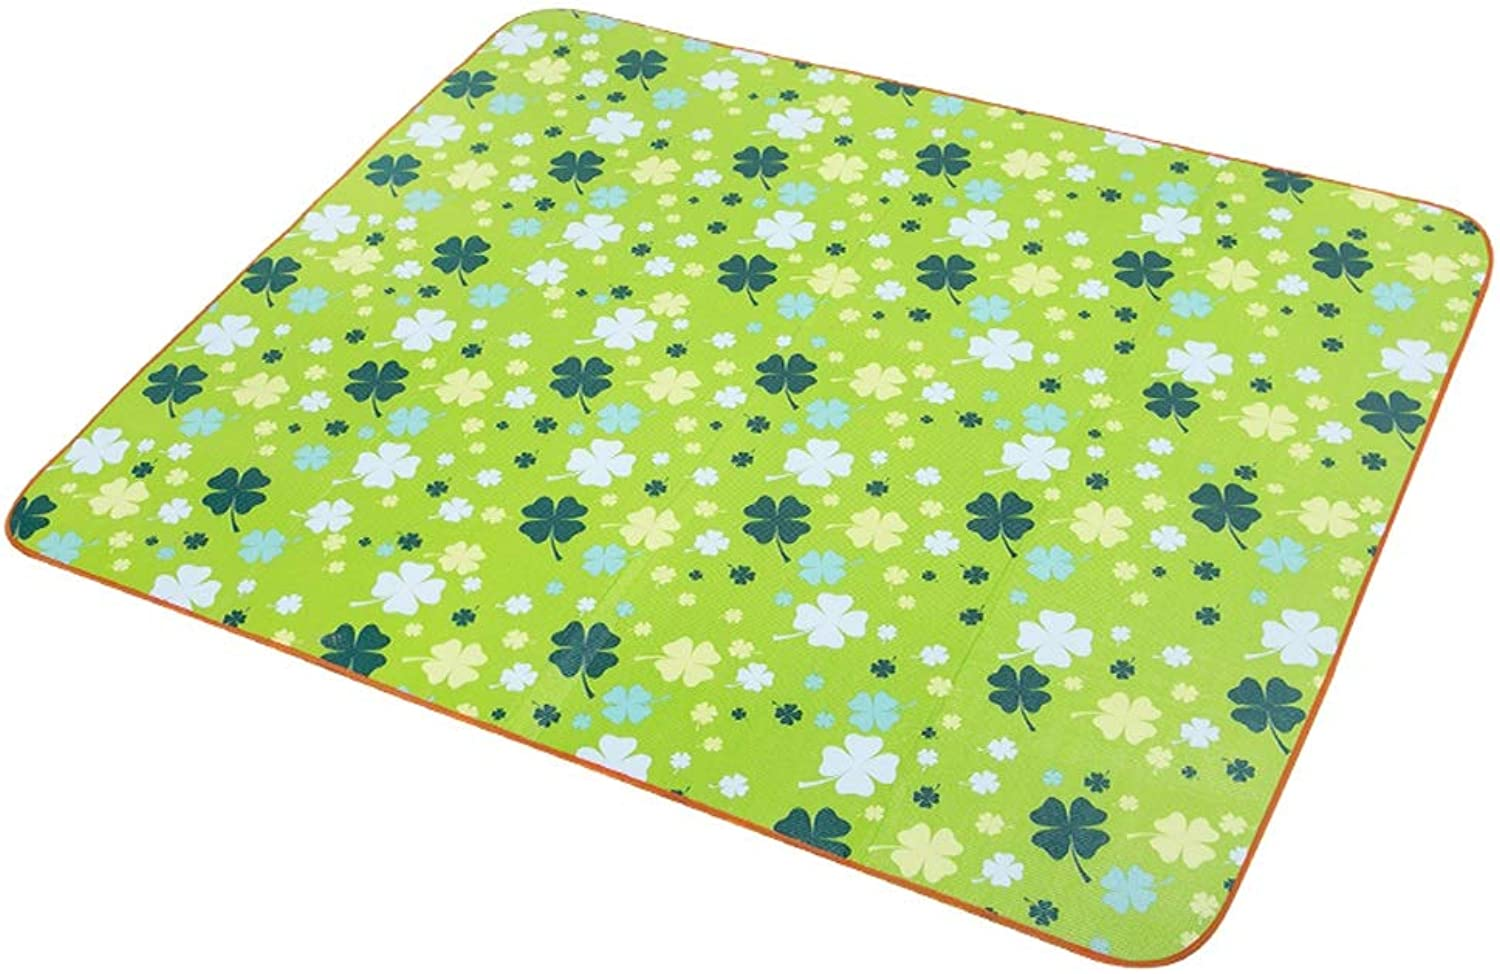 YZOOL Picnic Mat Outdoor Spring Tour Mat Cloth Ins Wind Wild Picnic Camping Green Lawn Portable Moisture Pad Portable Easy to Clean Non-Stick Grass Non-Stick Soil Moisture Waterproof Insulation